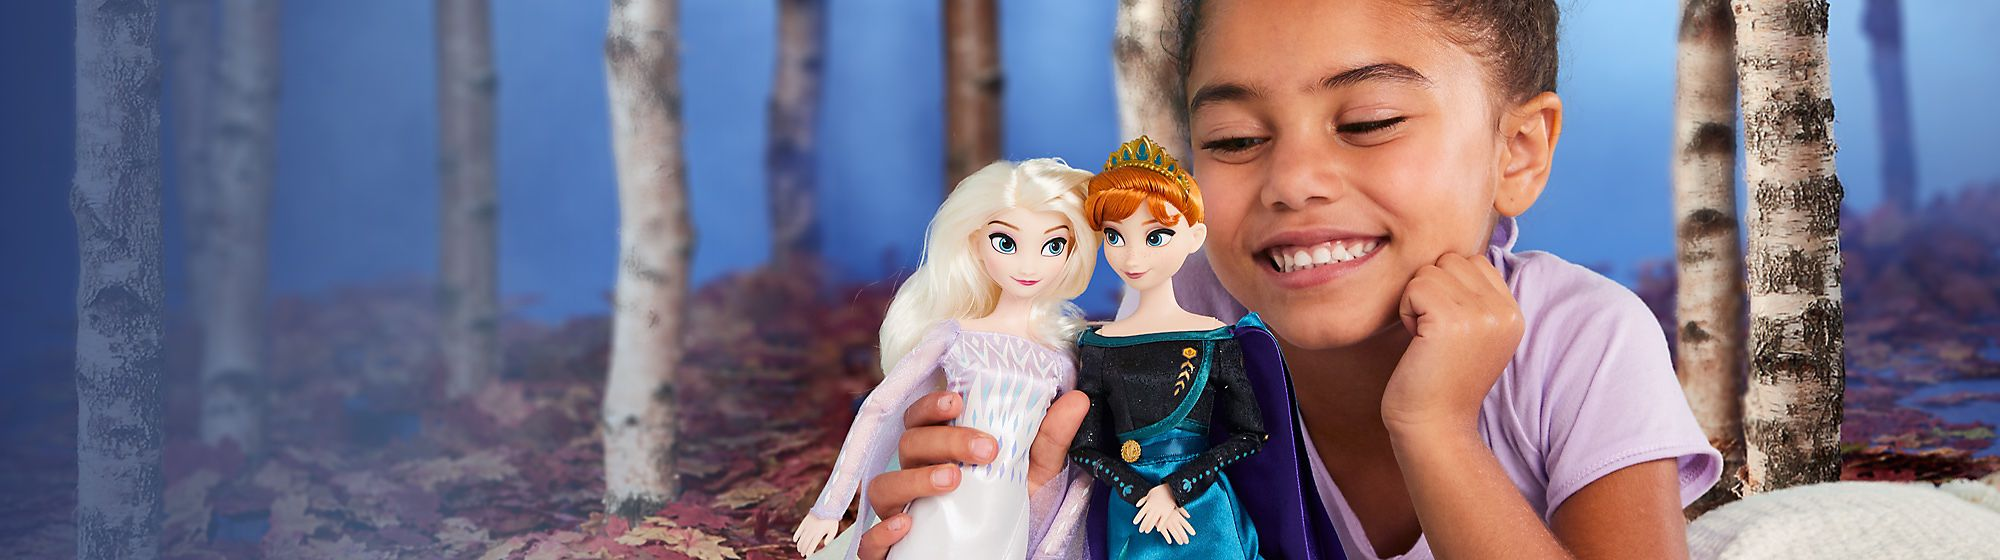 Frozen 2 Toys Discover our range of toys including playsets, soft toys, figurines and more